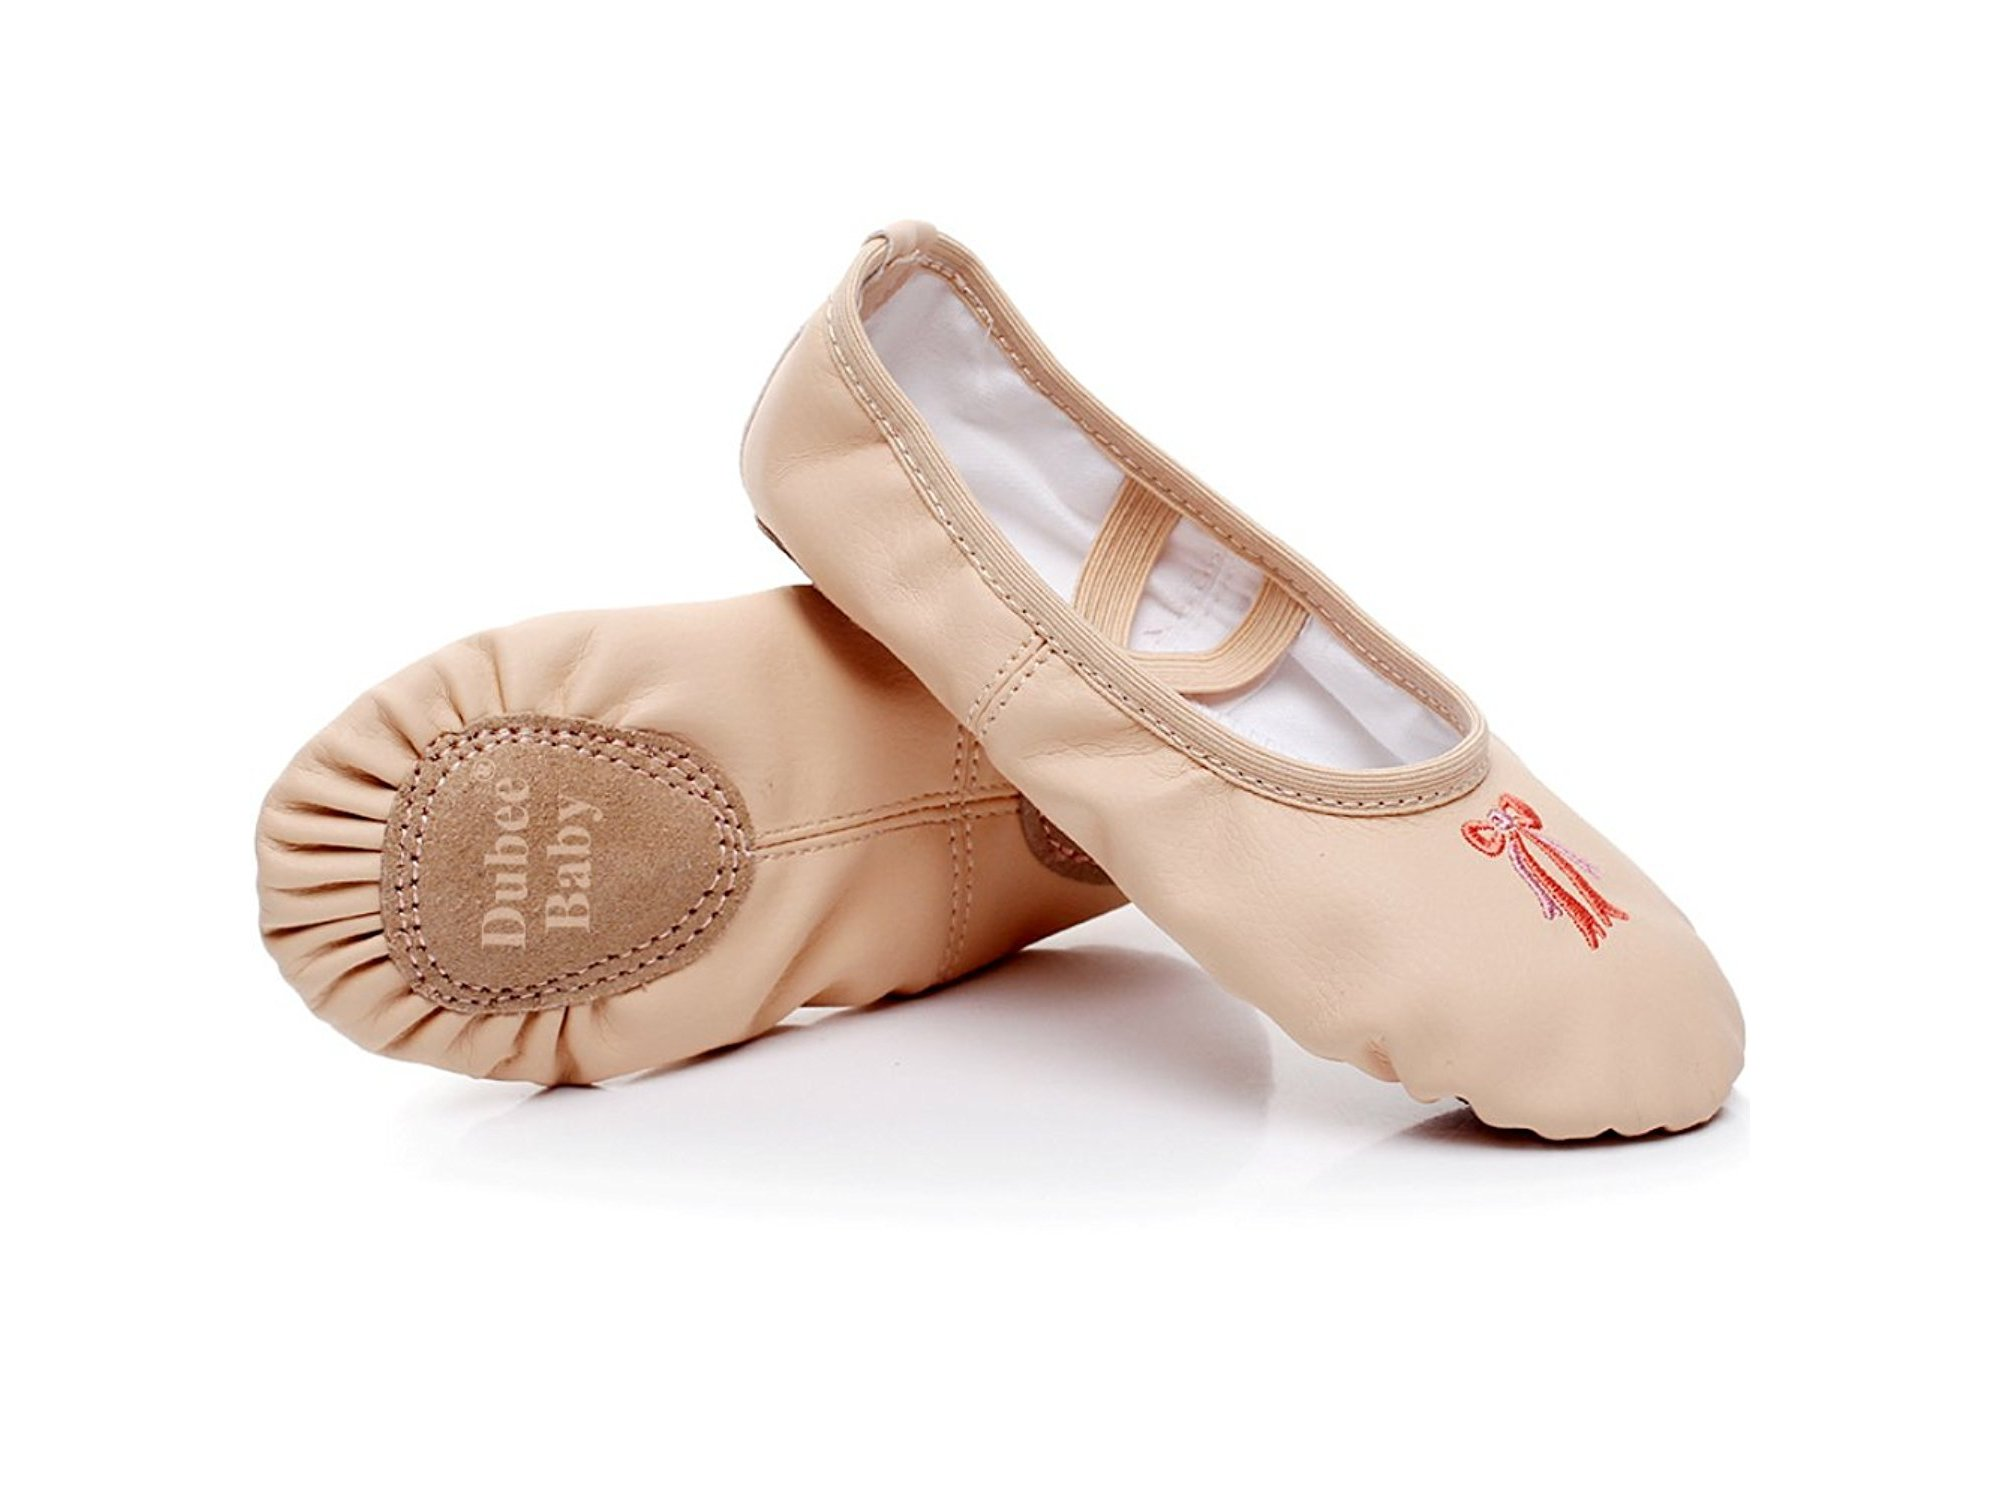 Ballet Leather Shoes Toddler Infant Baby Girl Dance Pumps Full Sole